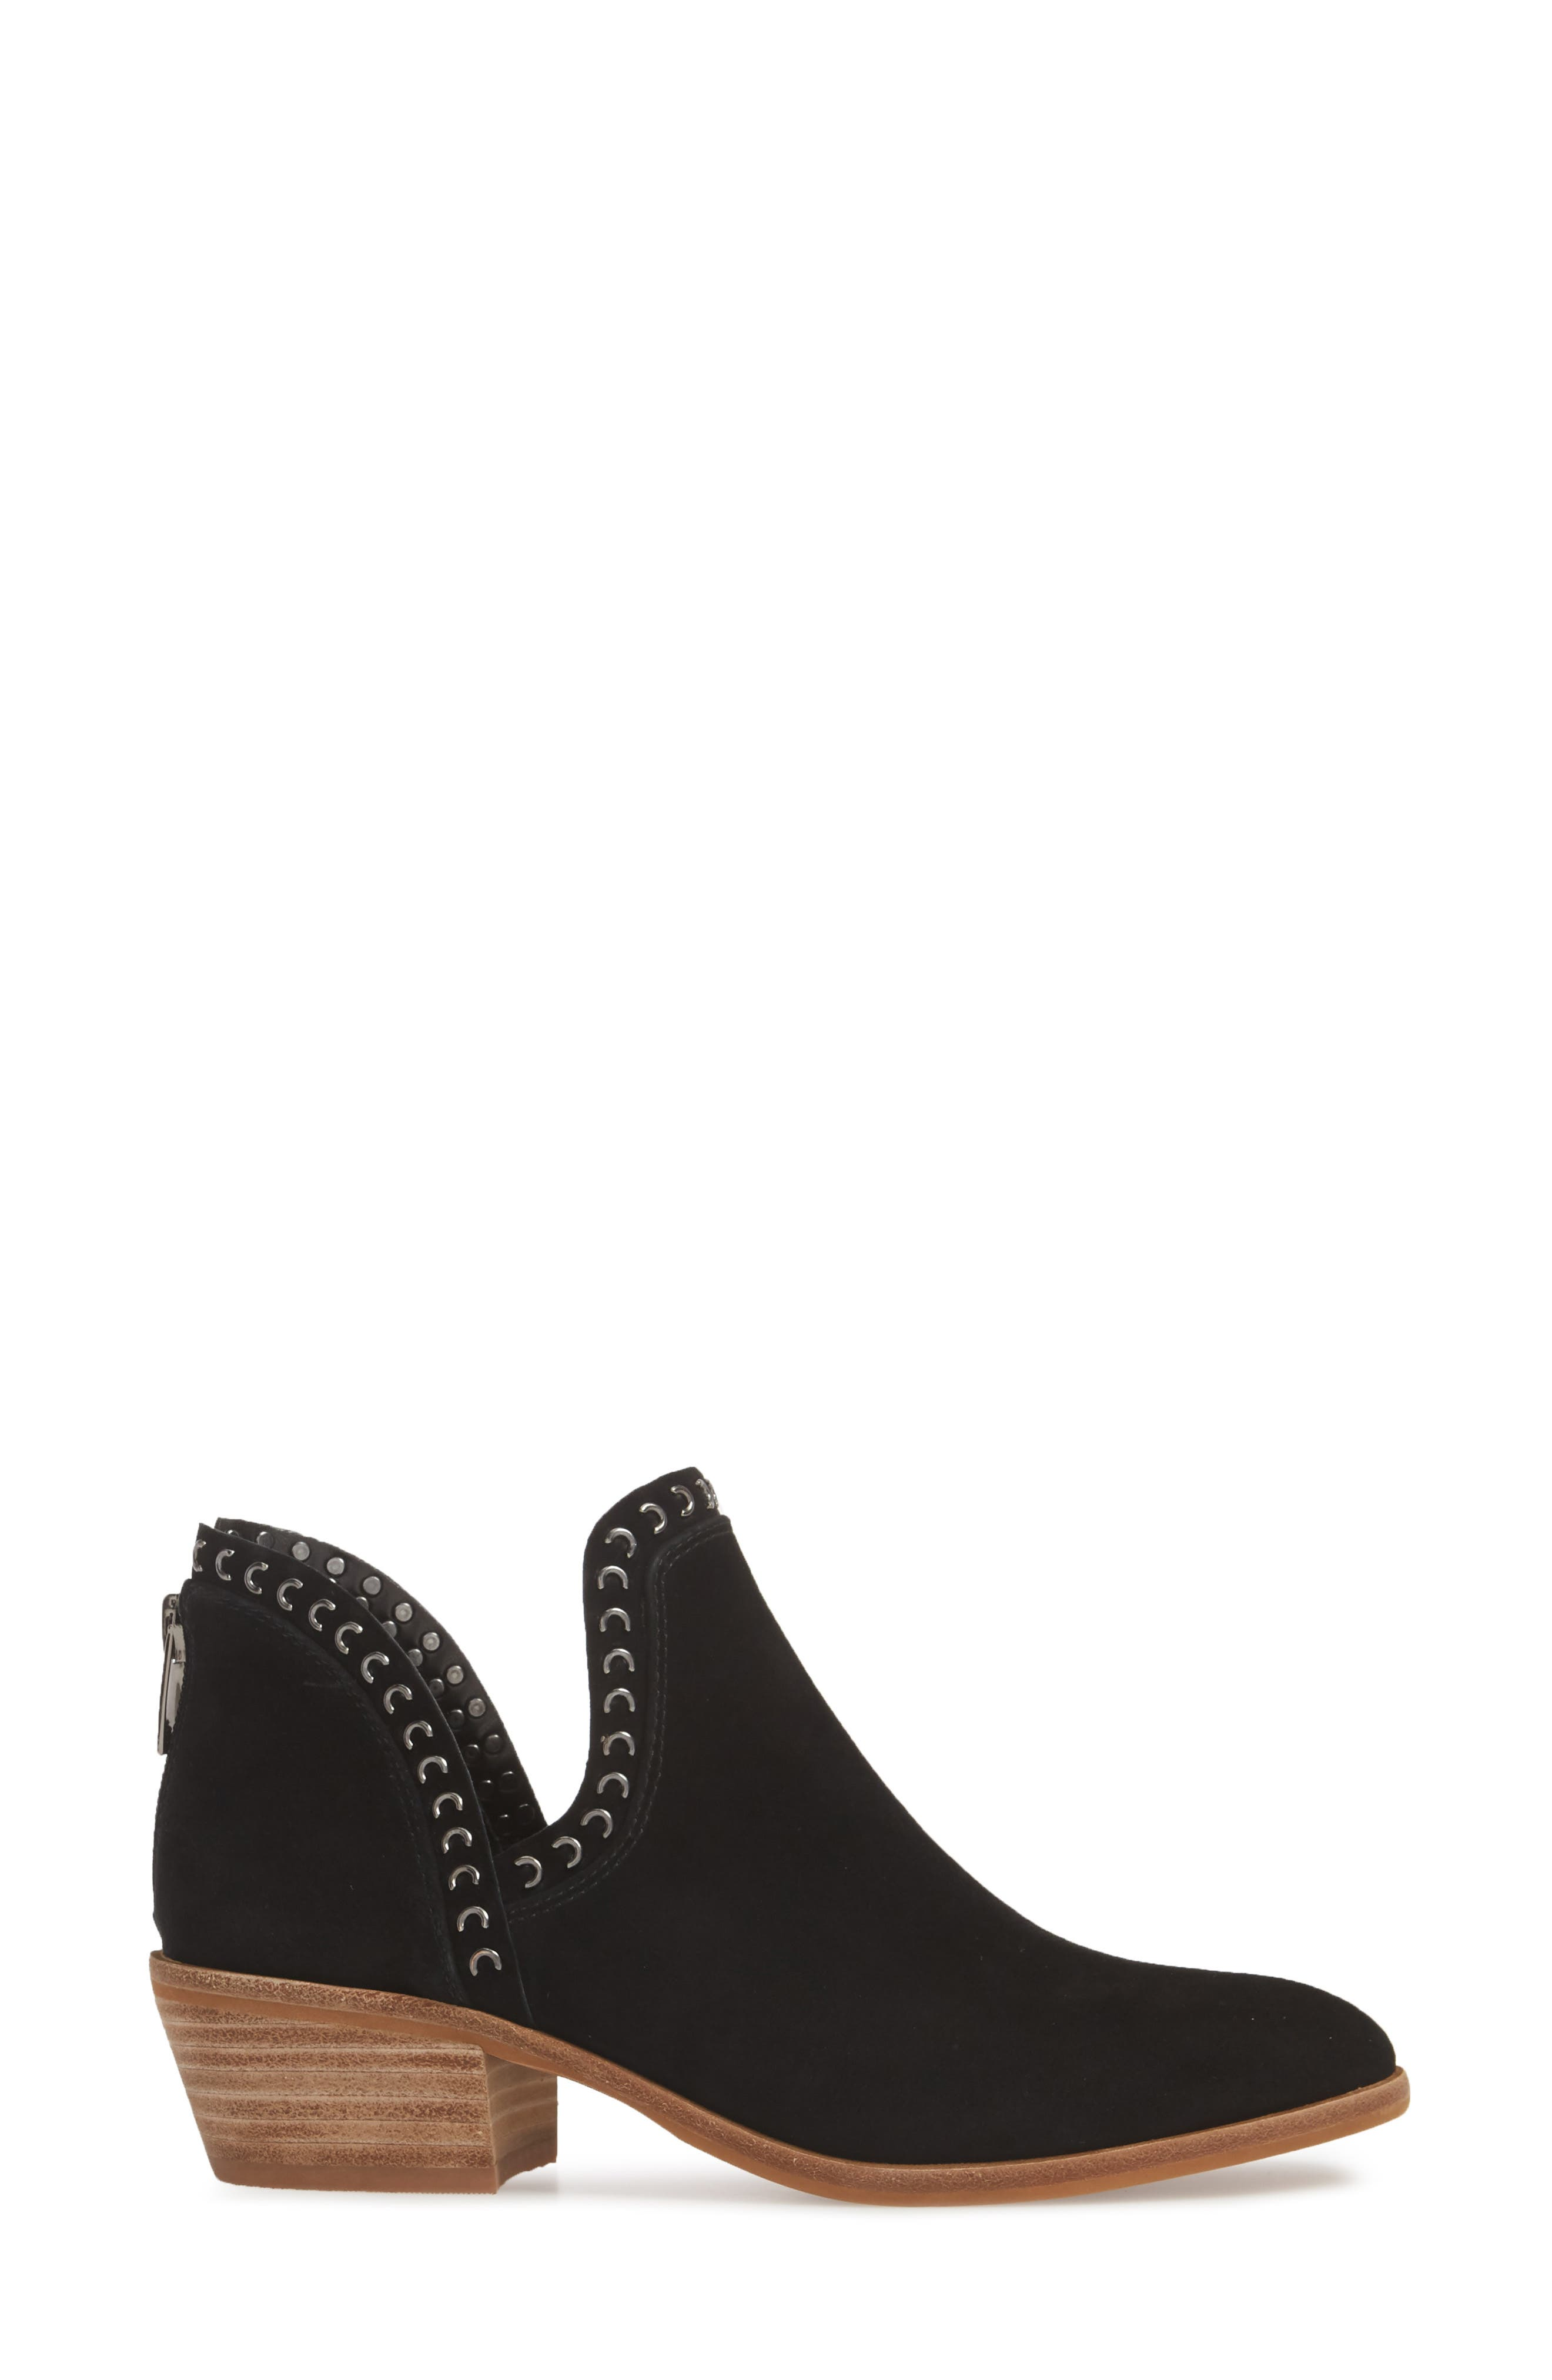 VINCE CAMUTO, Prafinta Boot, Alternate thumbnail 3, color, BLACK SUEDE